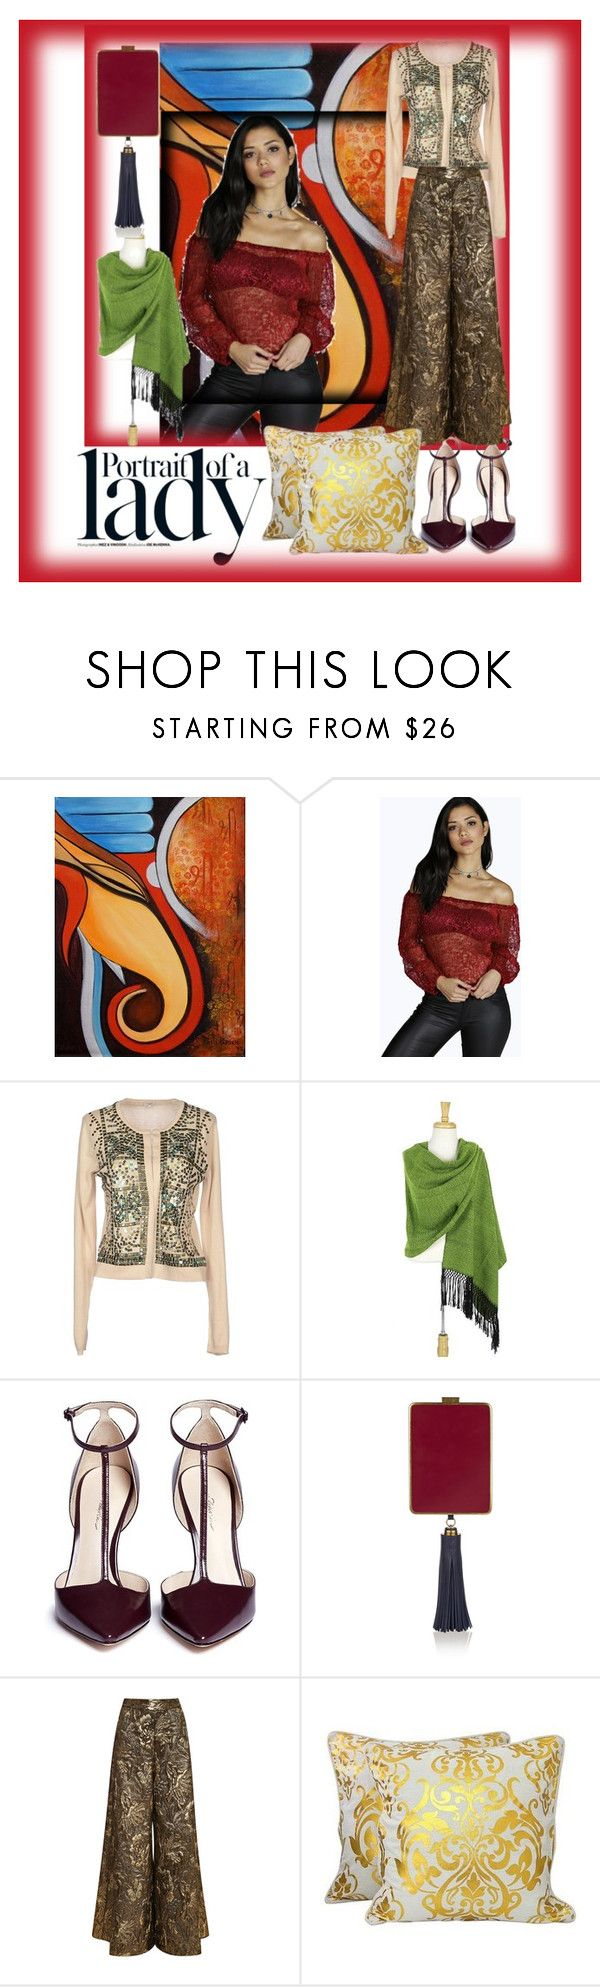 """""""Portrait 5"""" by bren-johnson ❤ liked on Polyvore featuring NOVICA, Boohoo, Inez & Vinoodh, Hoss Intropia, 3.1 Phillip Lim, Tory Burch and Brock Collection"""